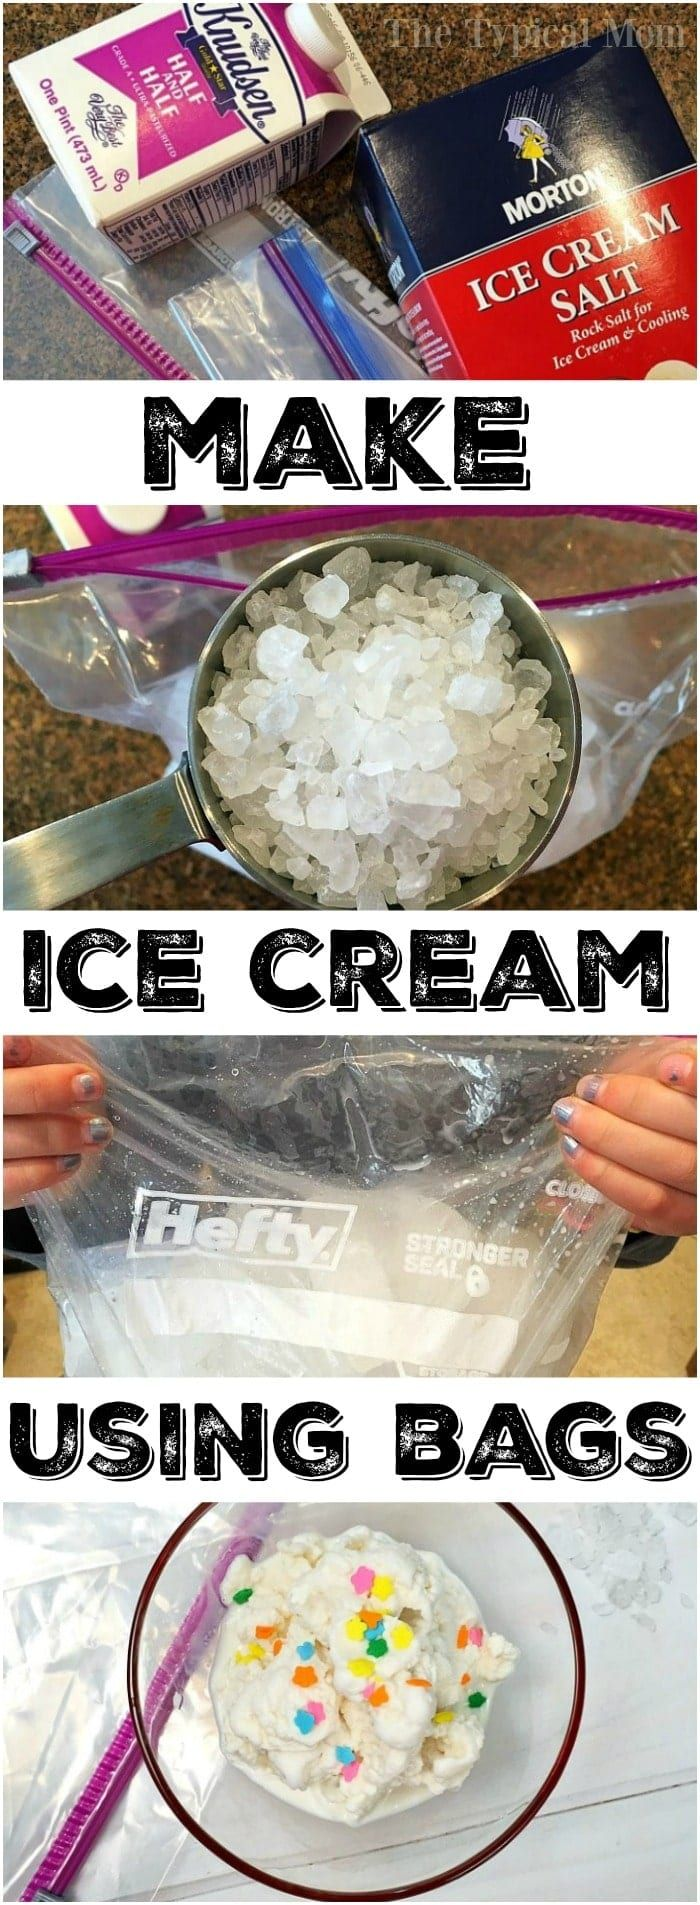 This is how to make ice cream at home using 2 bags!! It's an easy activity to do with your kids that is yummy and easy to do. You just need a few items to make homemade no churn ice cream without the need of an ice cream maker, really! You've got to try this with them this summer. #homemade #icecream #bags #howtomake #easy #recipe #nochurn via @pinterest.com/thetypicalmom #homemadeicecream